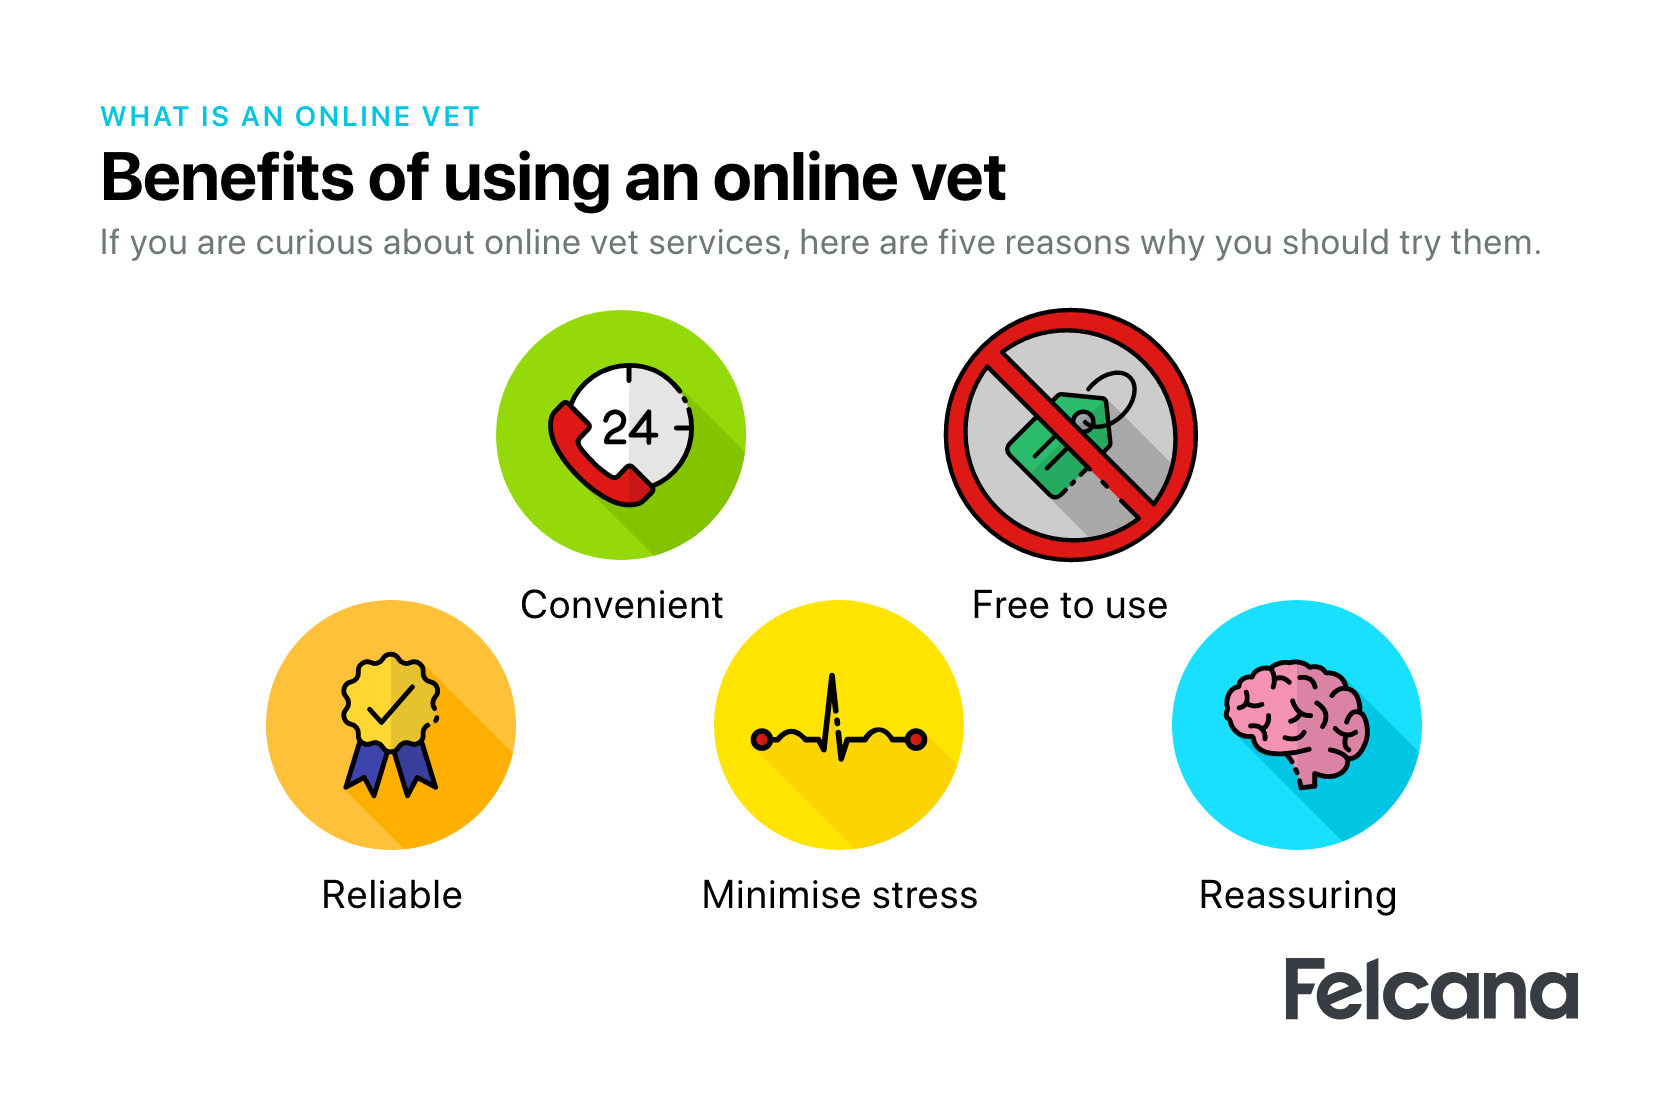 5 benefits of using an online vet: Convenient, free to use, reliable, reassuring, minimise stress